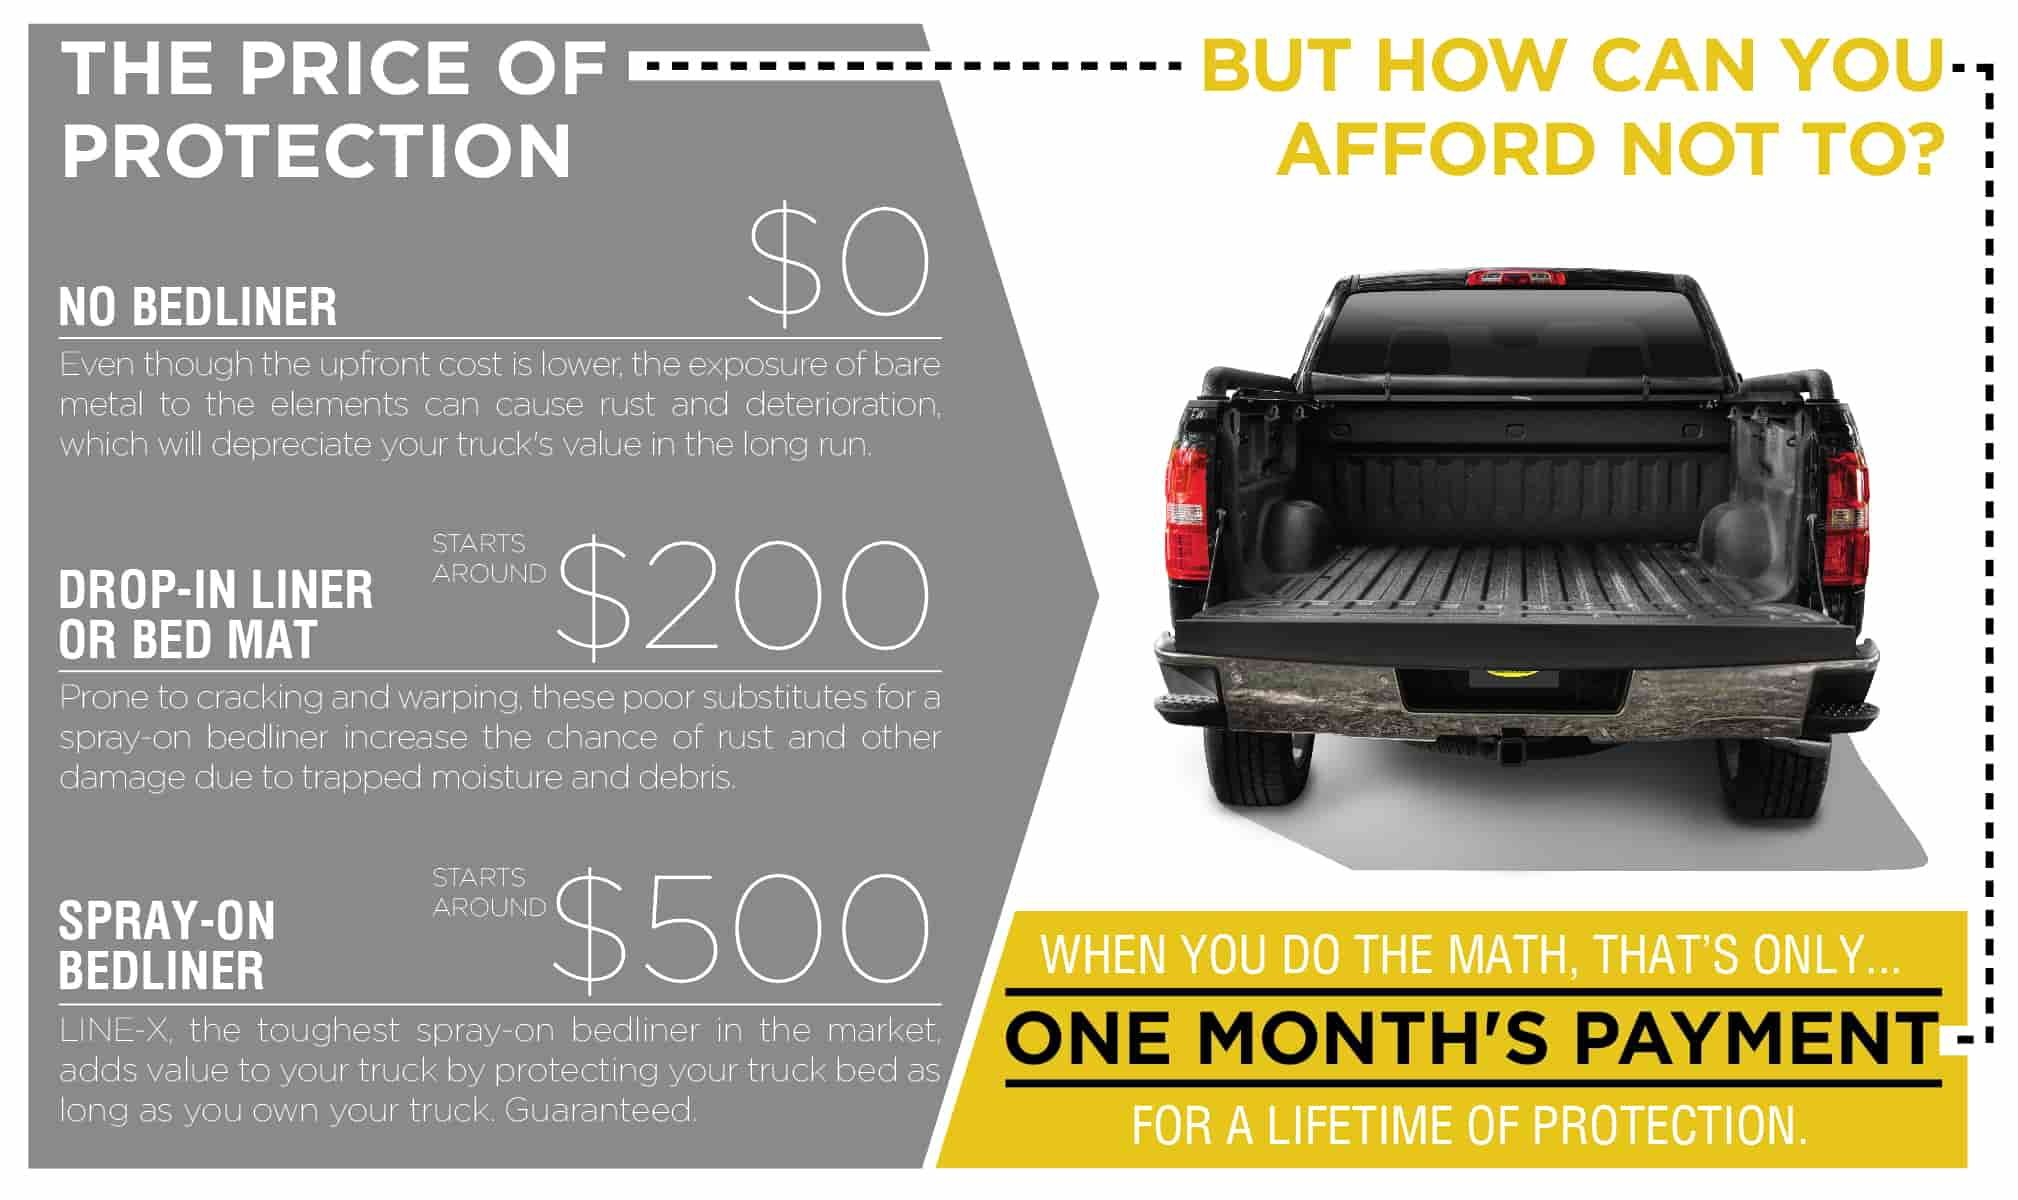 How Much Does Line X Cost >> ADDING VALUE AND VIRTUAL INDESTRUCTIBILITY TO YOUR TRUCK COSTS LESS THAN YOU THINK | LineX